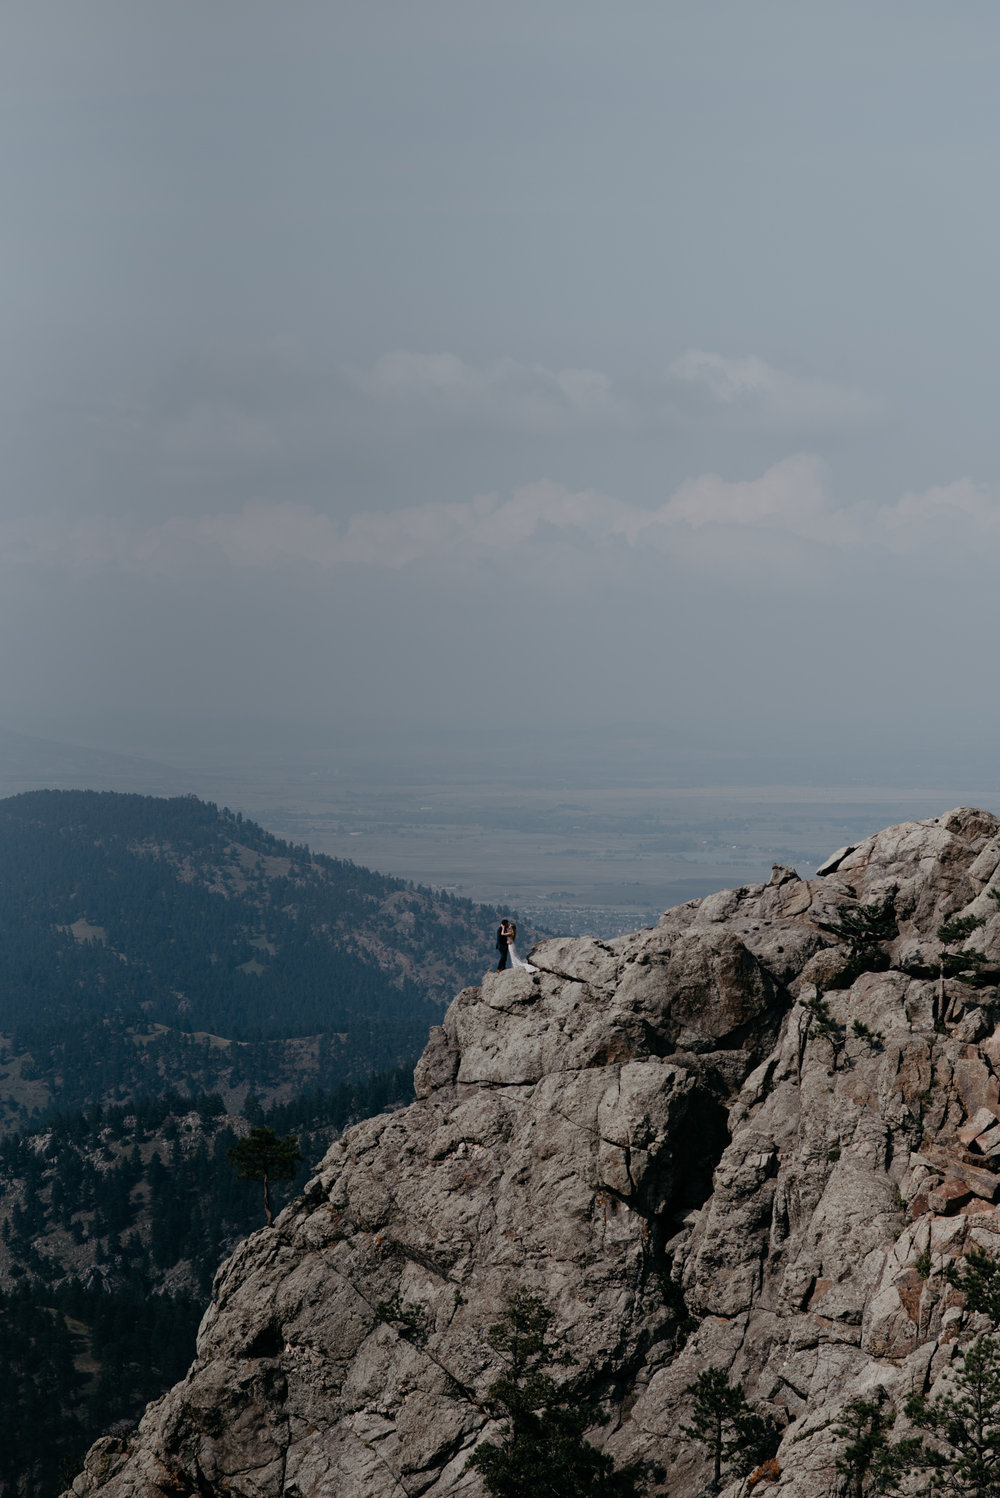 Colorado mountain elopement and wedding photographer. Adventure elopement in Boulder, Colorado.